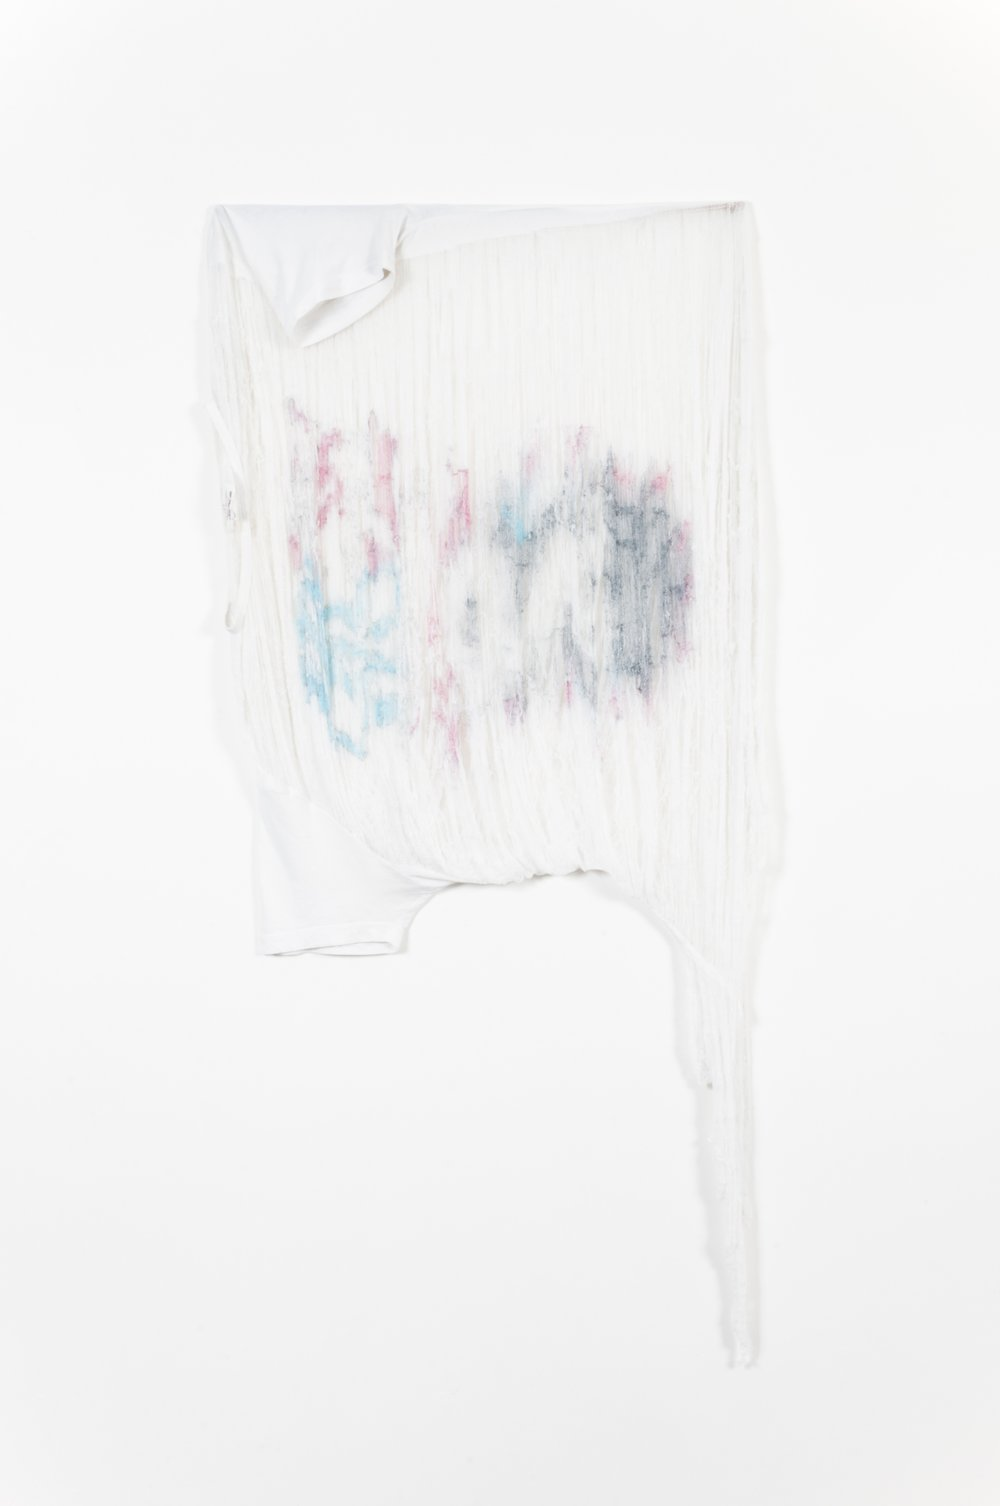 USA t-shirt, recycled mixed cotton tee, 2014.